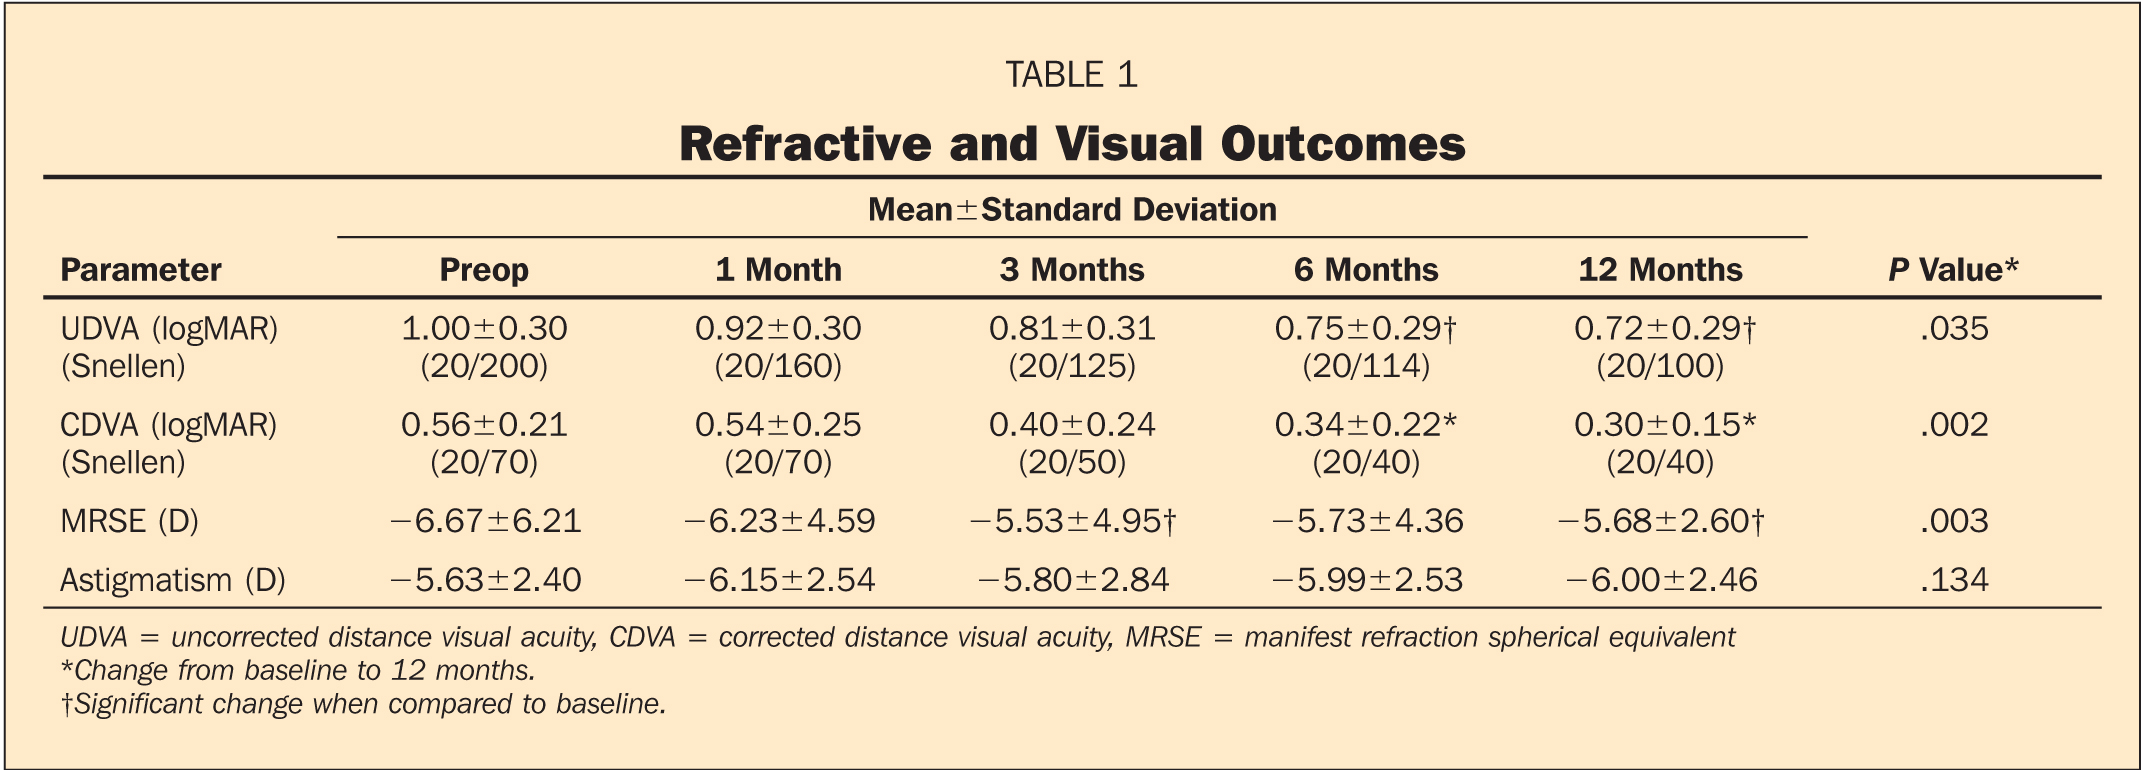 Refractive and Visual Outcomes